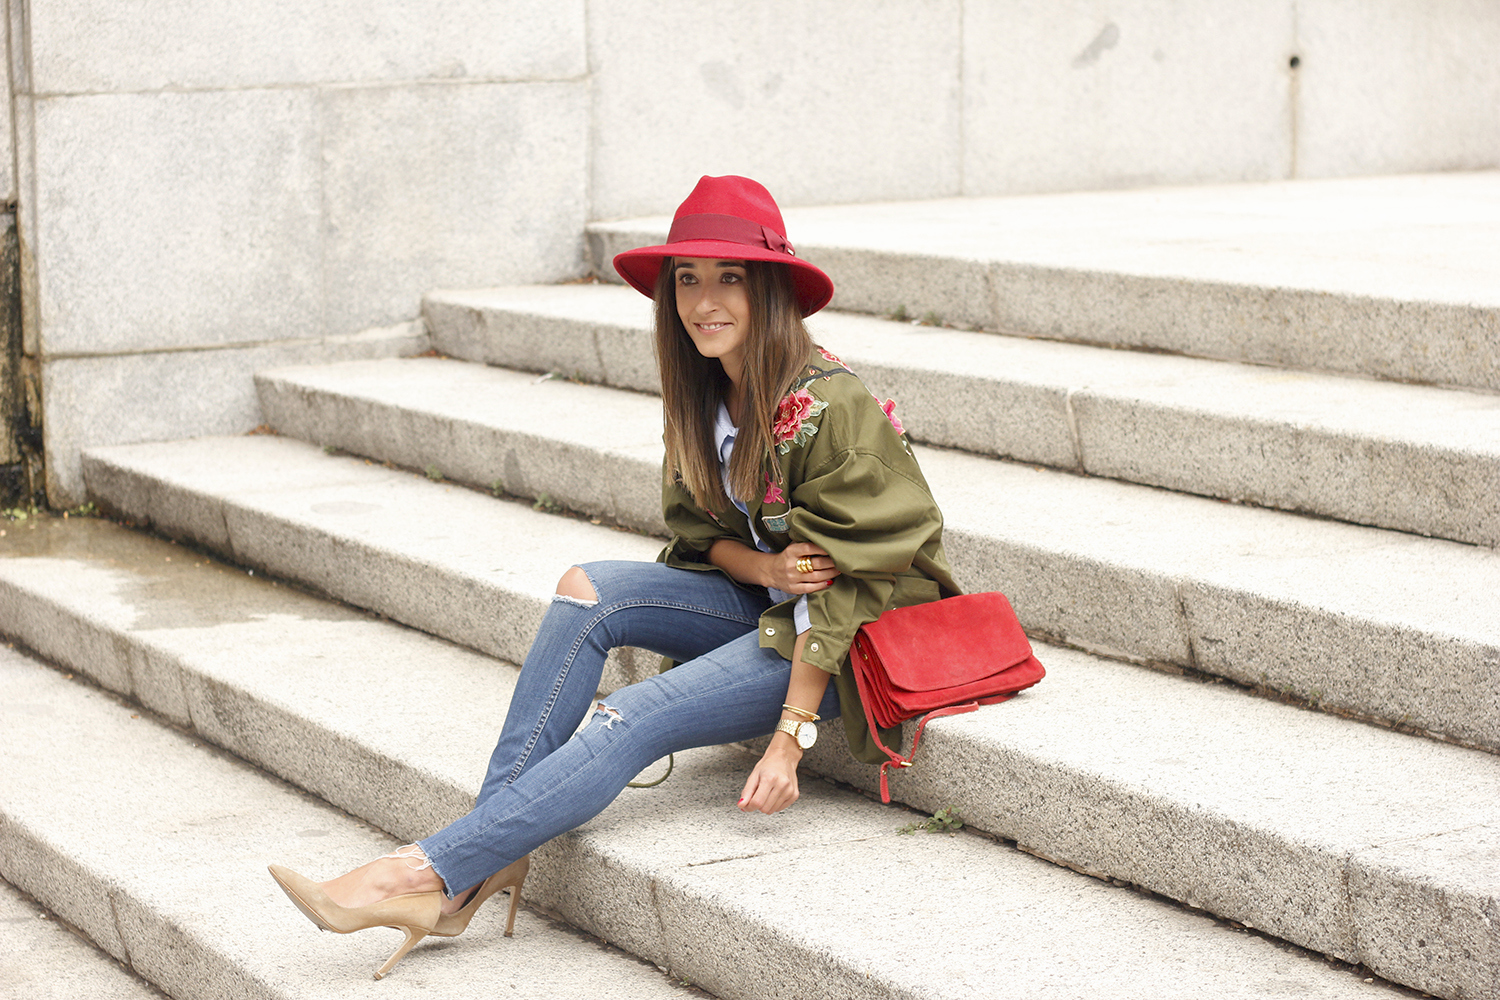 Green Parka Jeans nude heels red uterqüe hat style fashion02